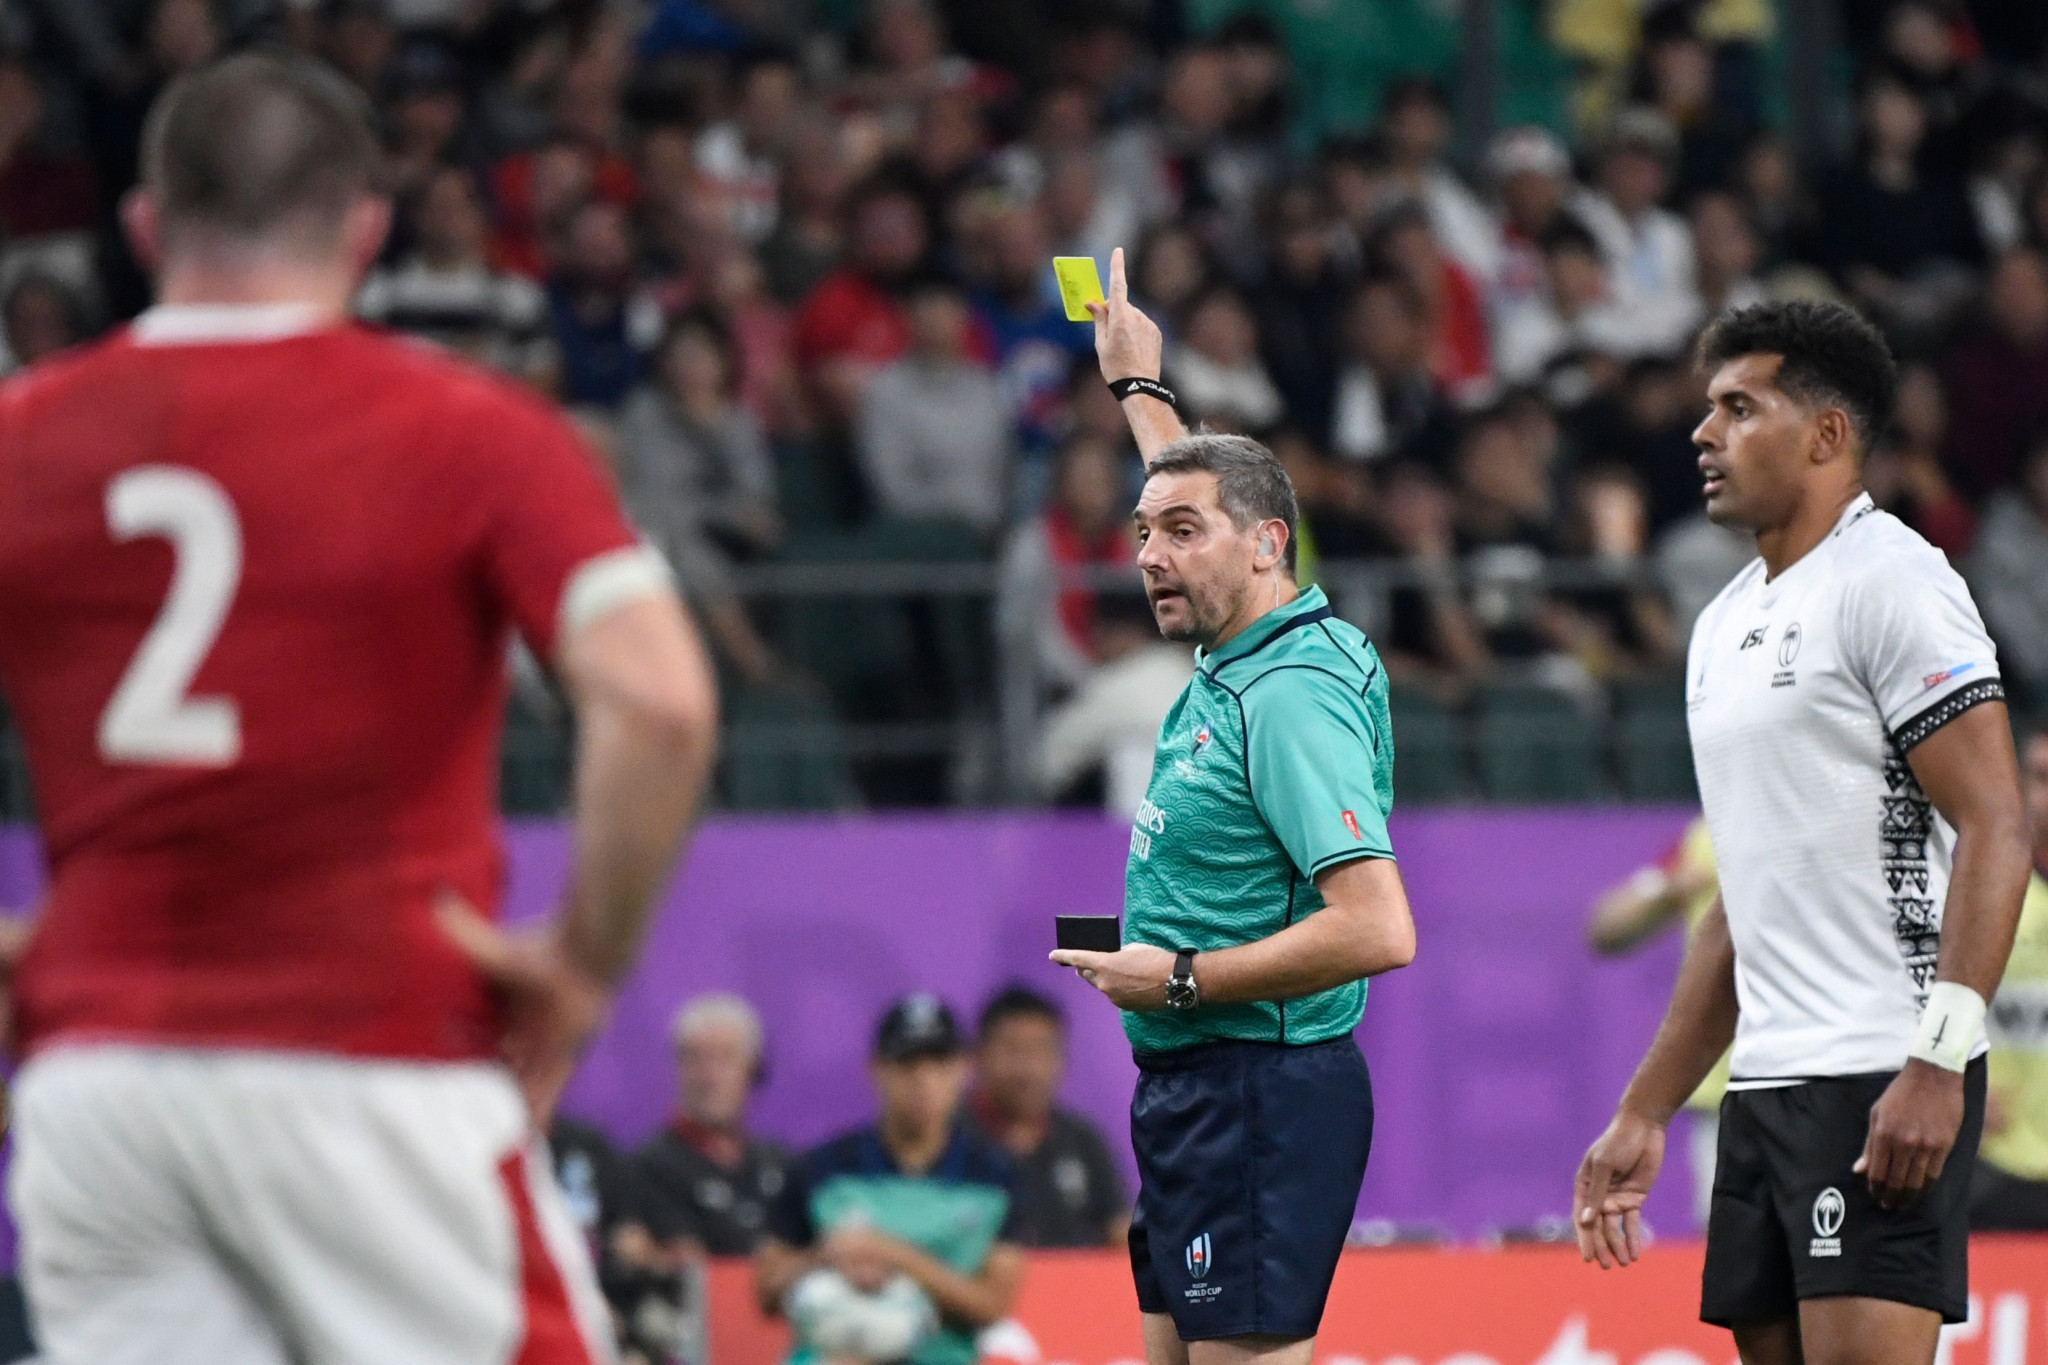 French referee Jerome Garces was a busy man, but allowed the game to flow ©Getty Images